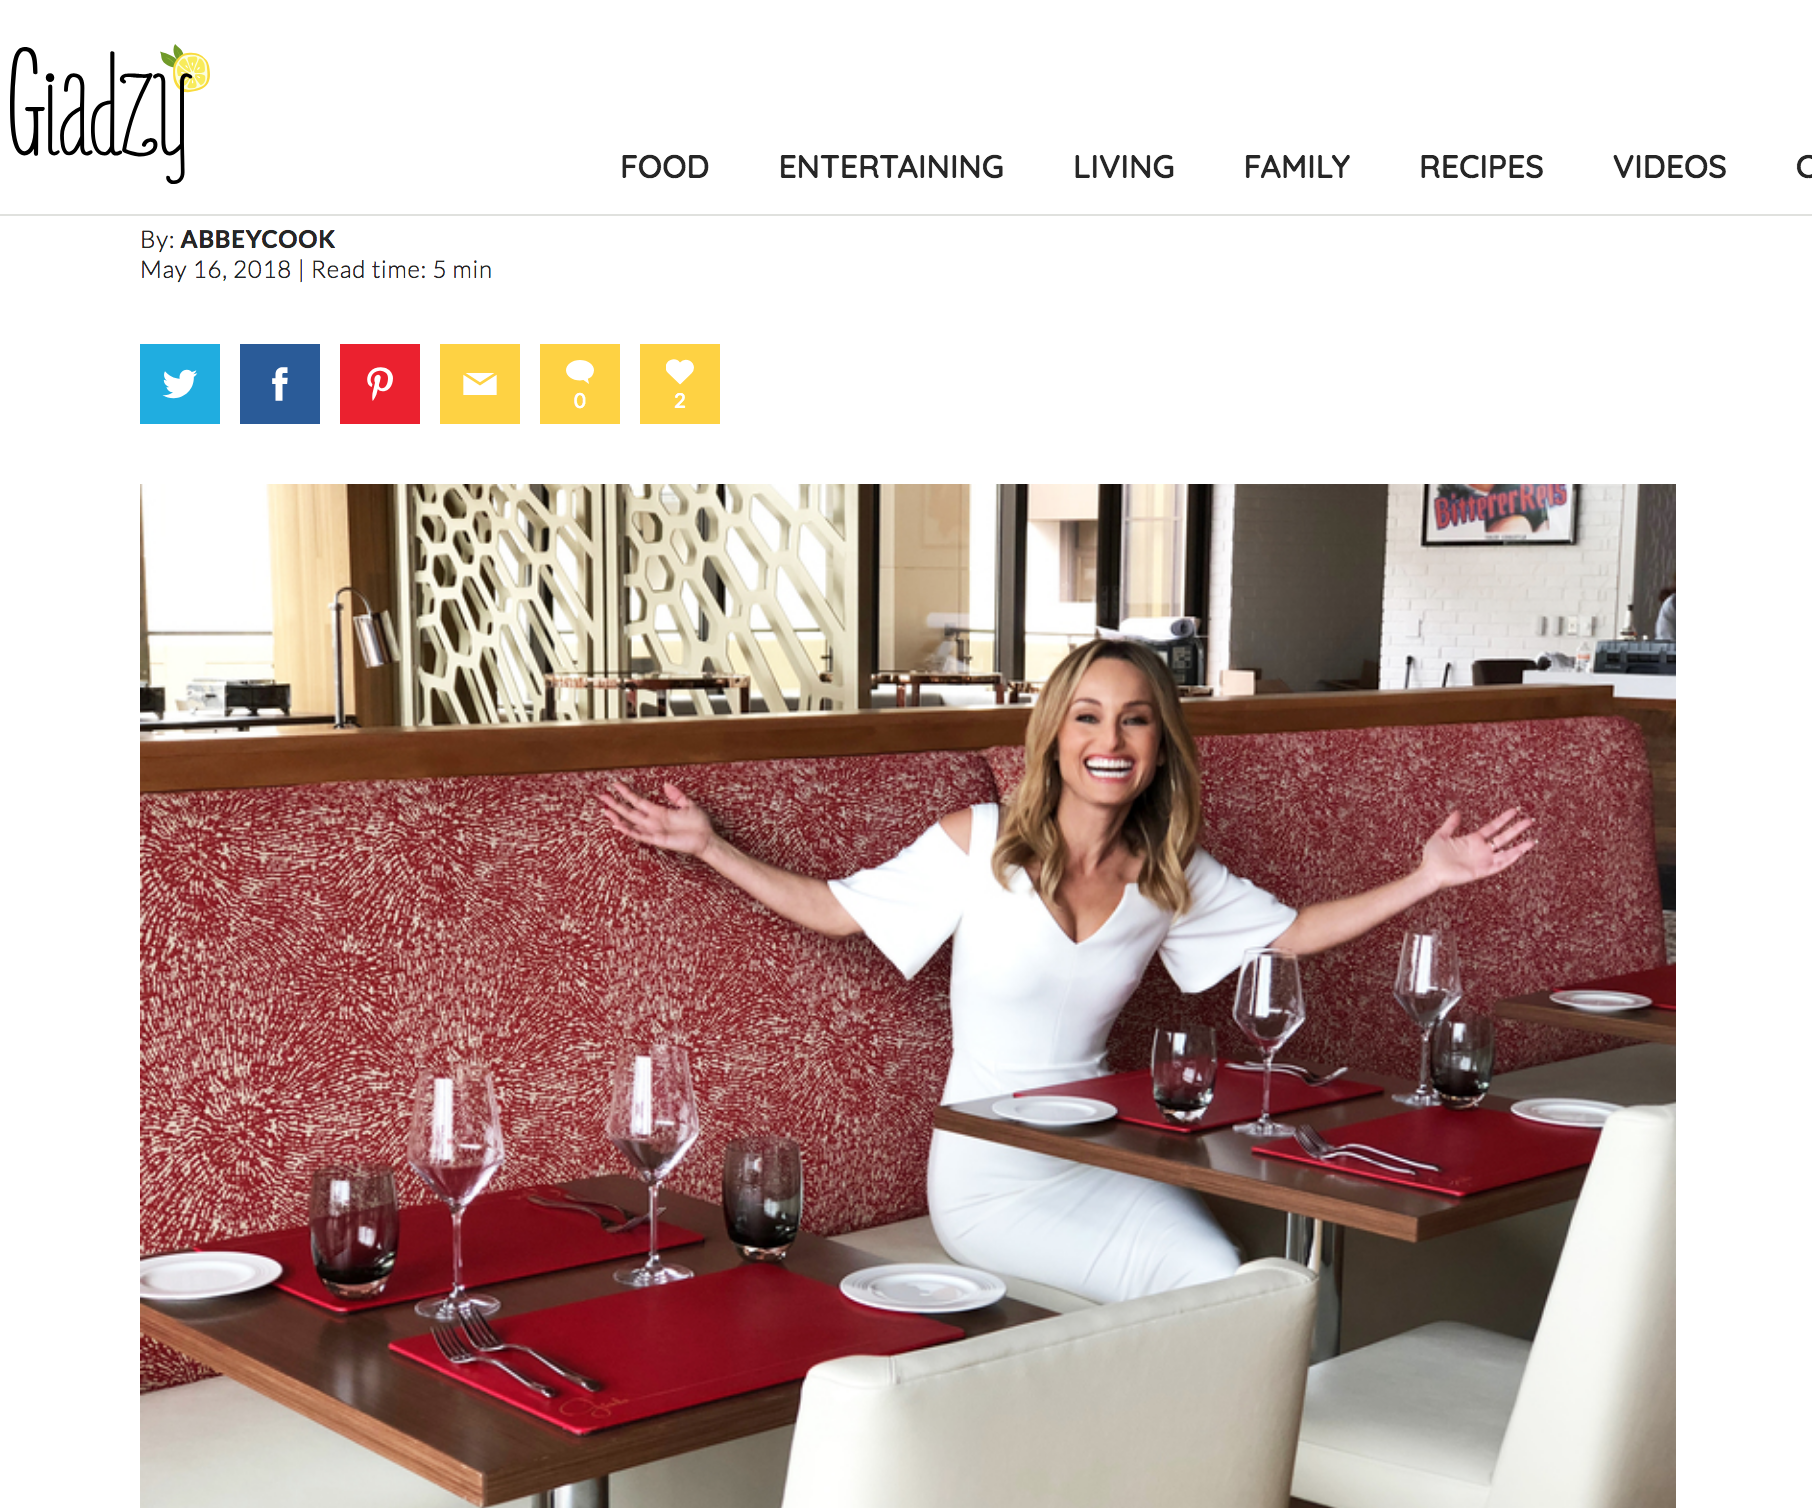 Article written for Giadzy, the lifestyle website by celebrity chef, Giada De Laurentiis